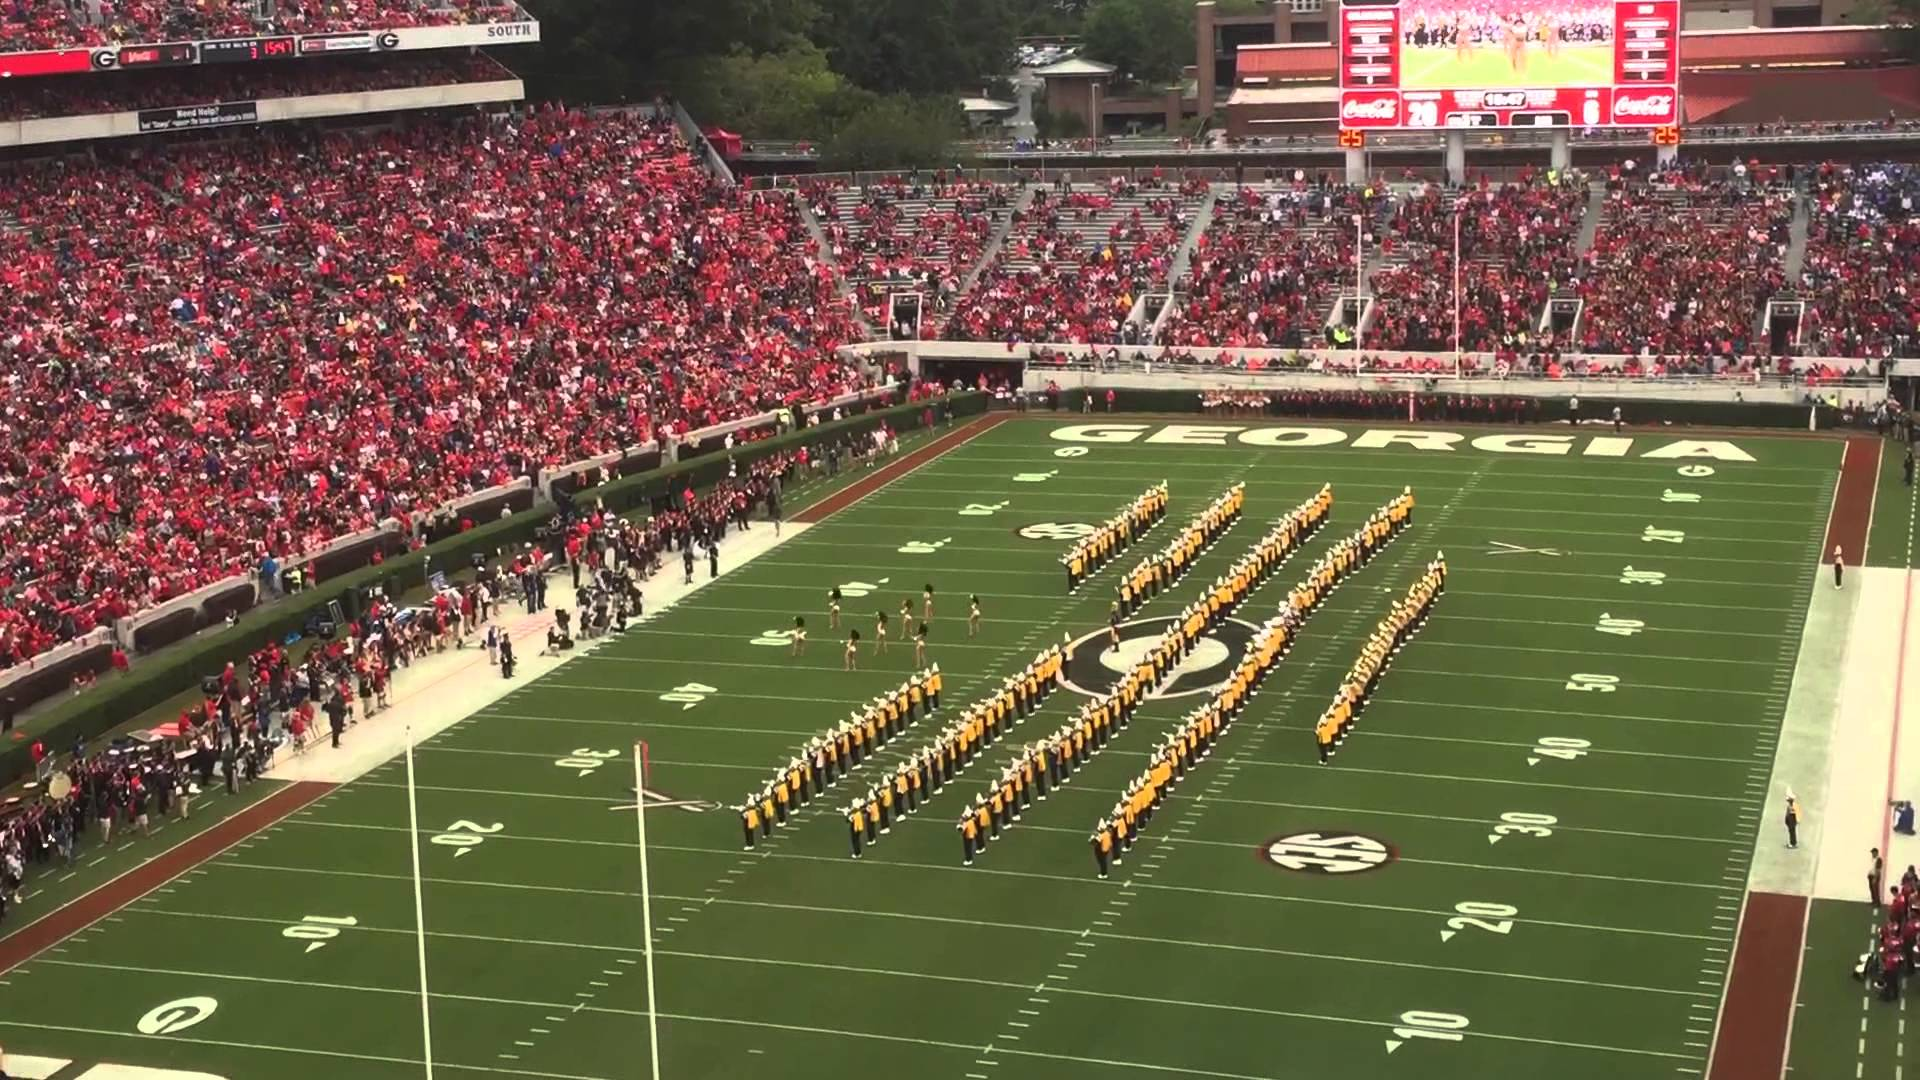 HBCU Band Throwback: The Day Southern Rocked Georgia